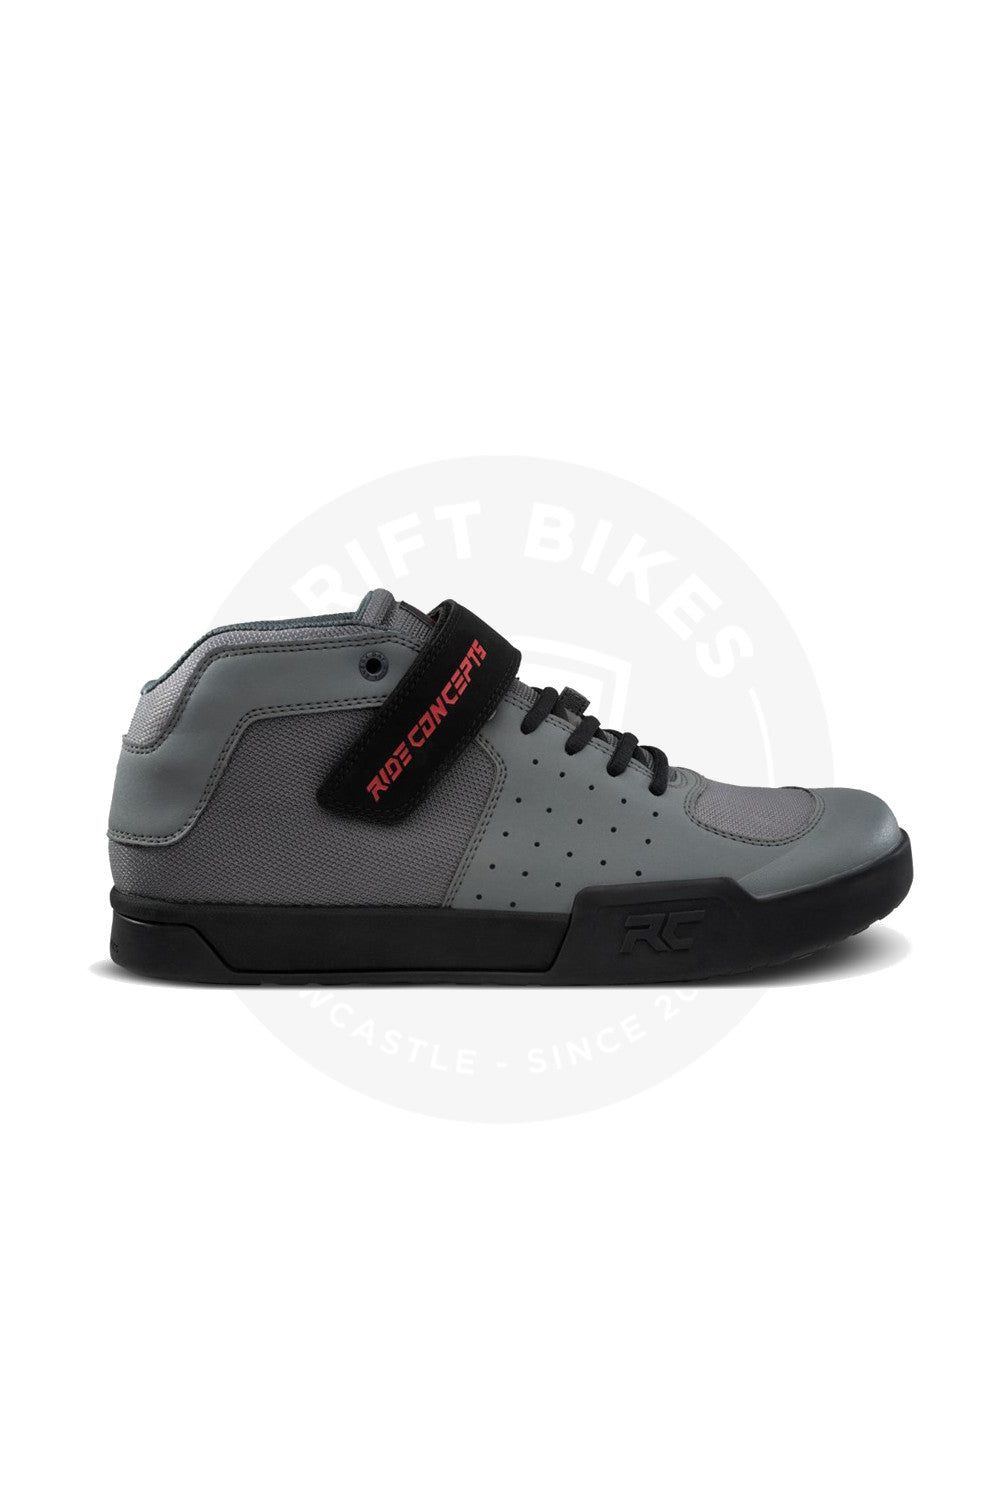 Ride Concepts Wildcat Flat Bike Shoe